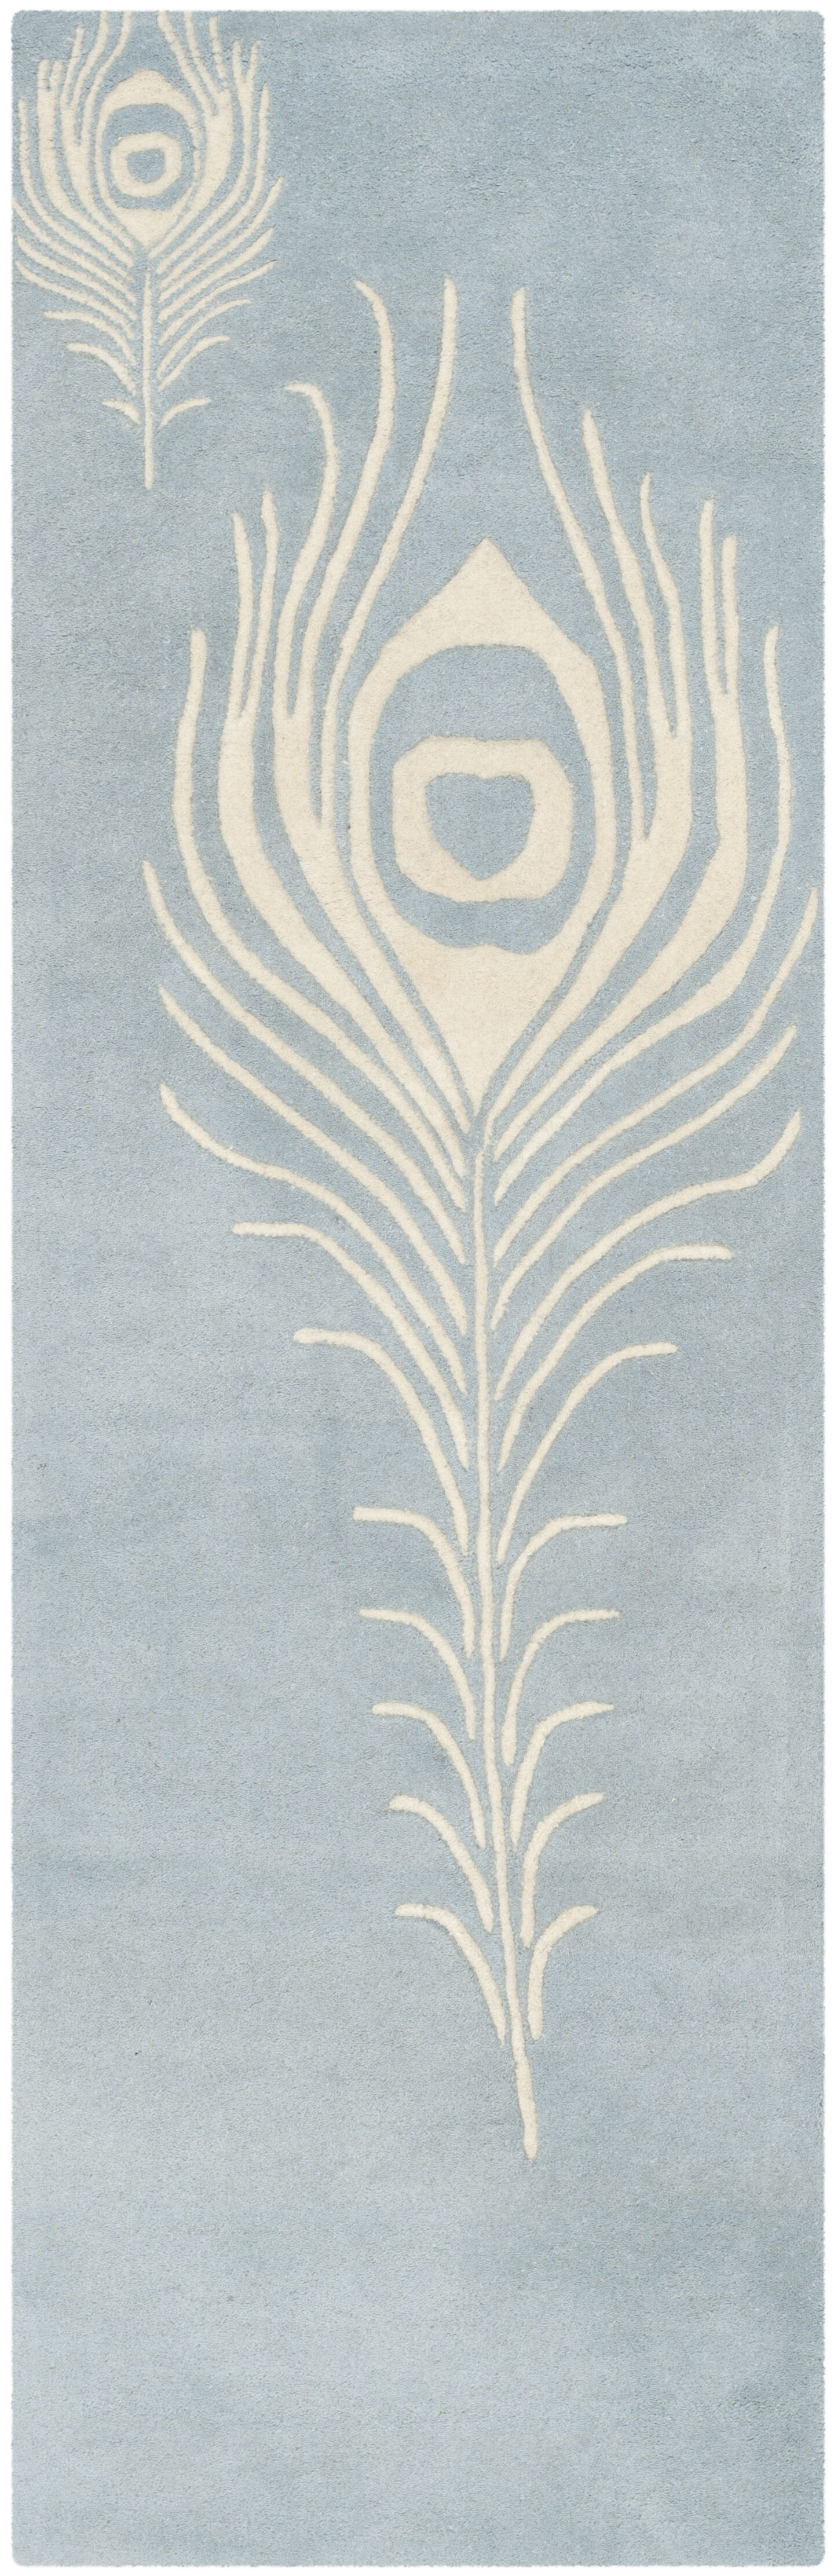 Dorthy Light Blue / Ivory Contemporary Rug Rug Size: Runner 2'6